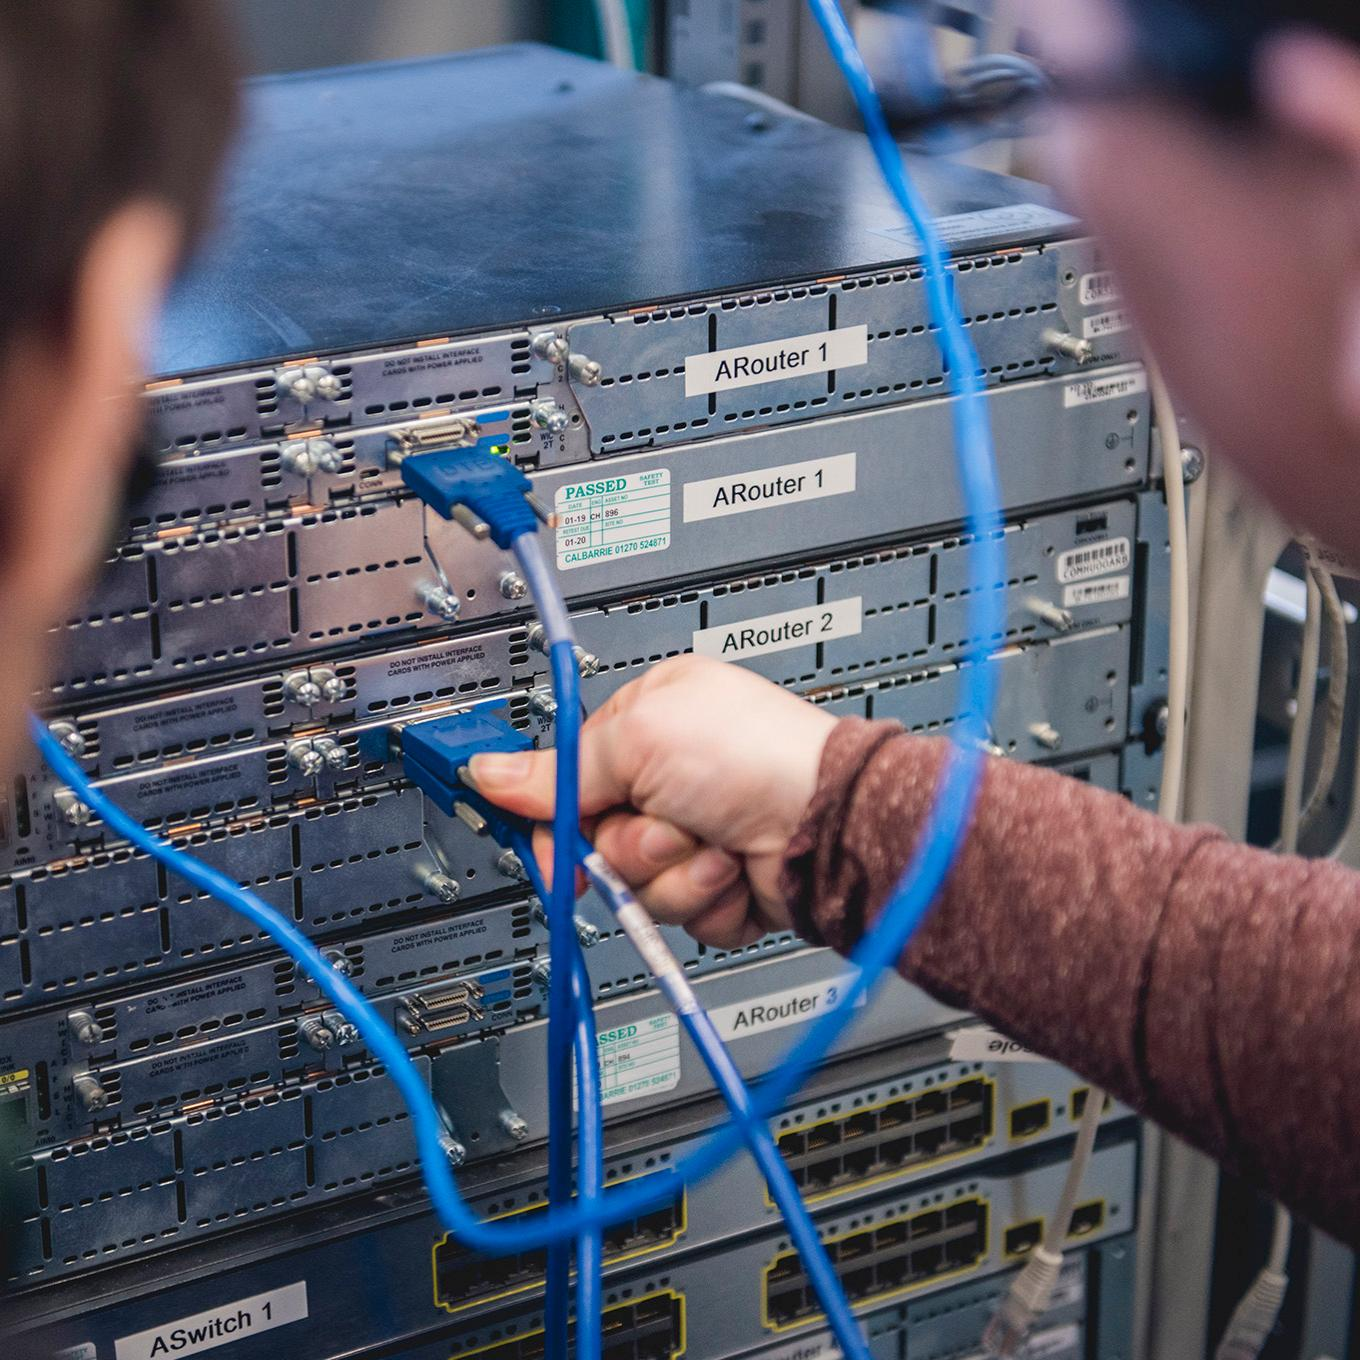 Two students face a server stack, one plugs in a cable